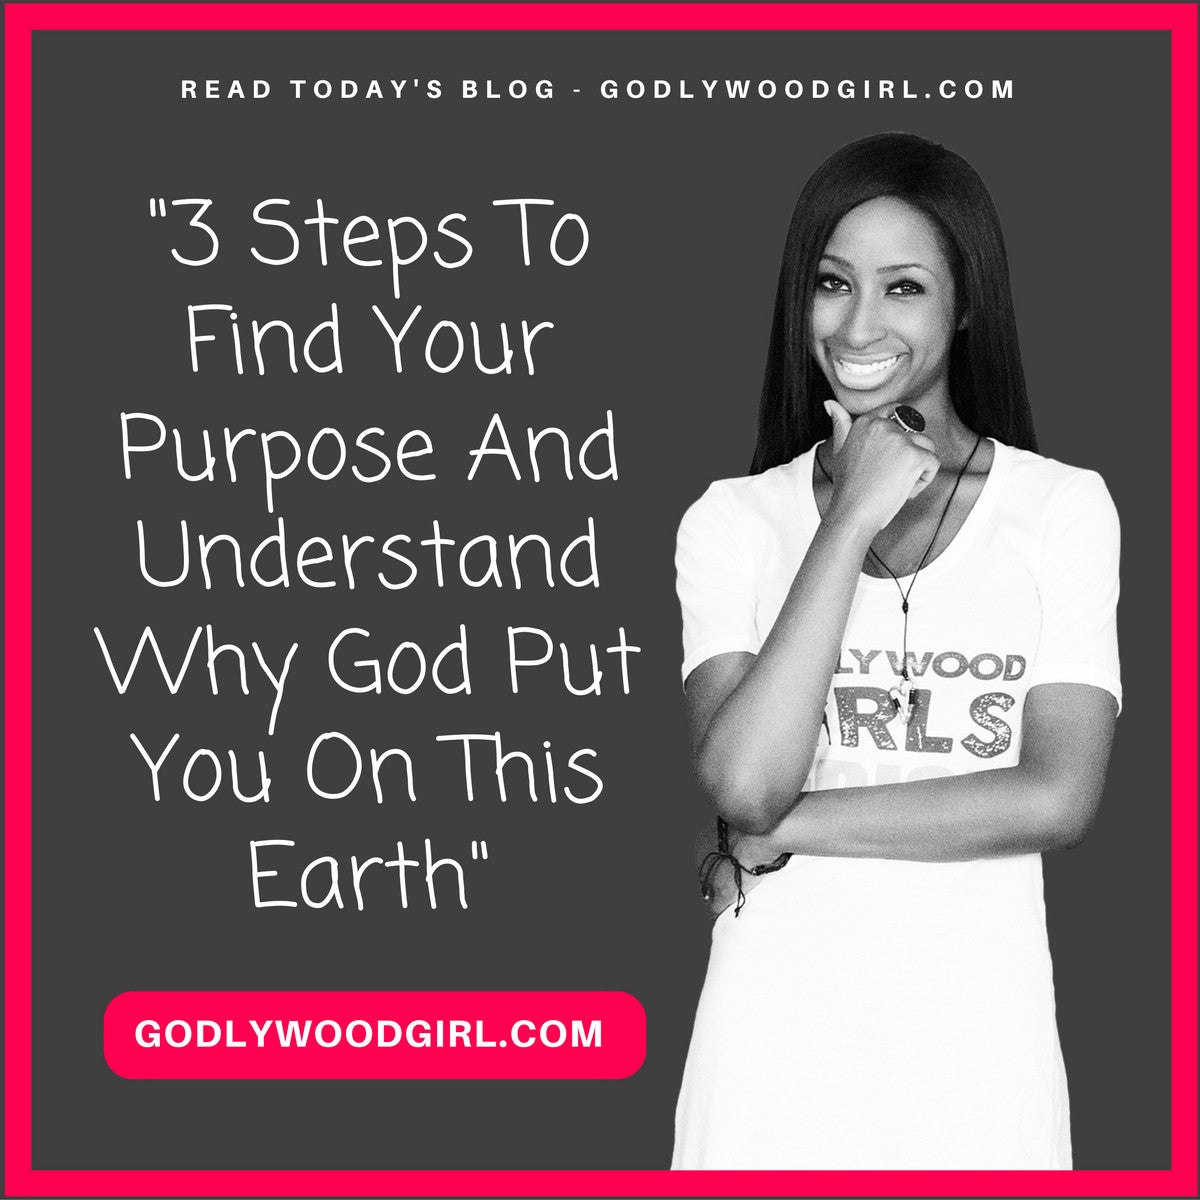 3 Steps To Find Your Purpose Blog Article